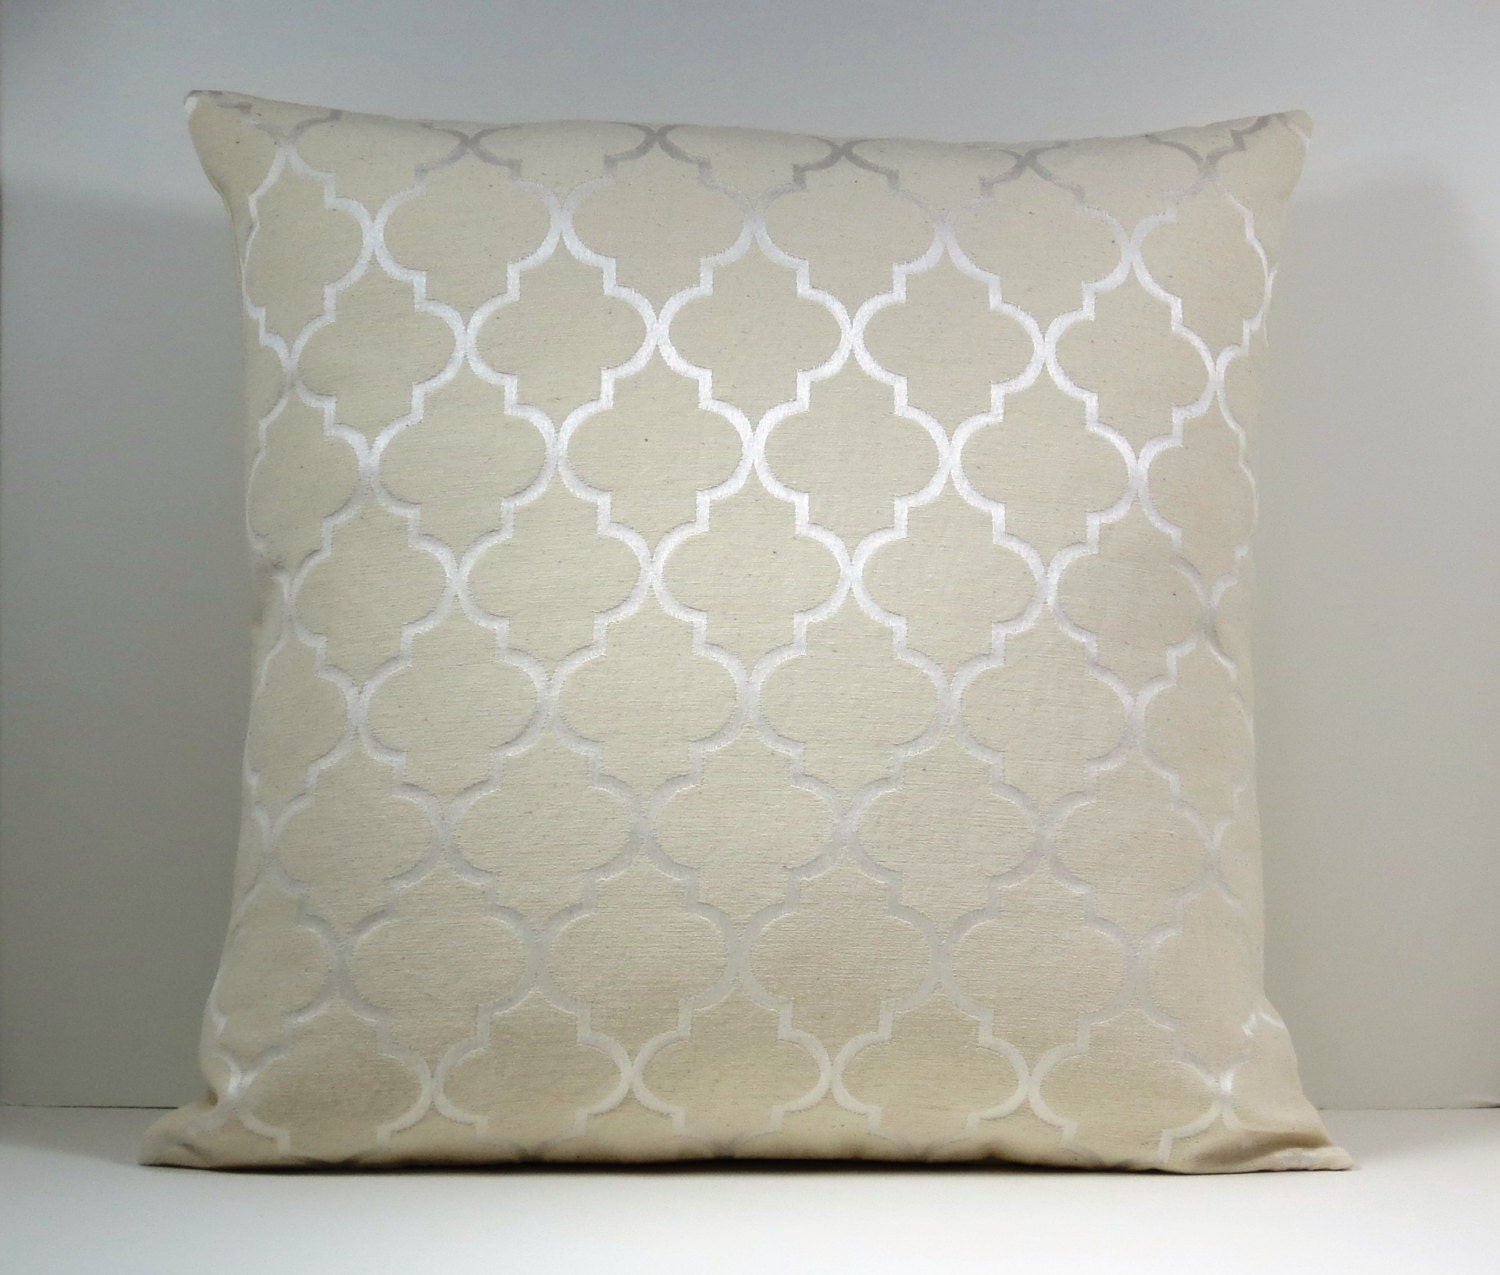 Throw Pillows For Neutral Couch : Natural Neutral color Moroccan Trellis decorative throw pillow